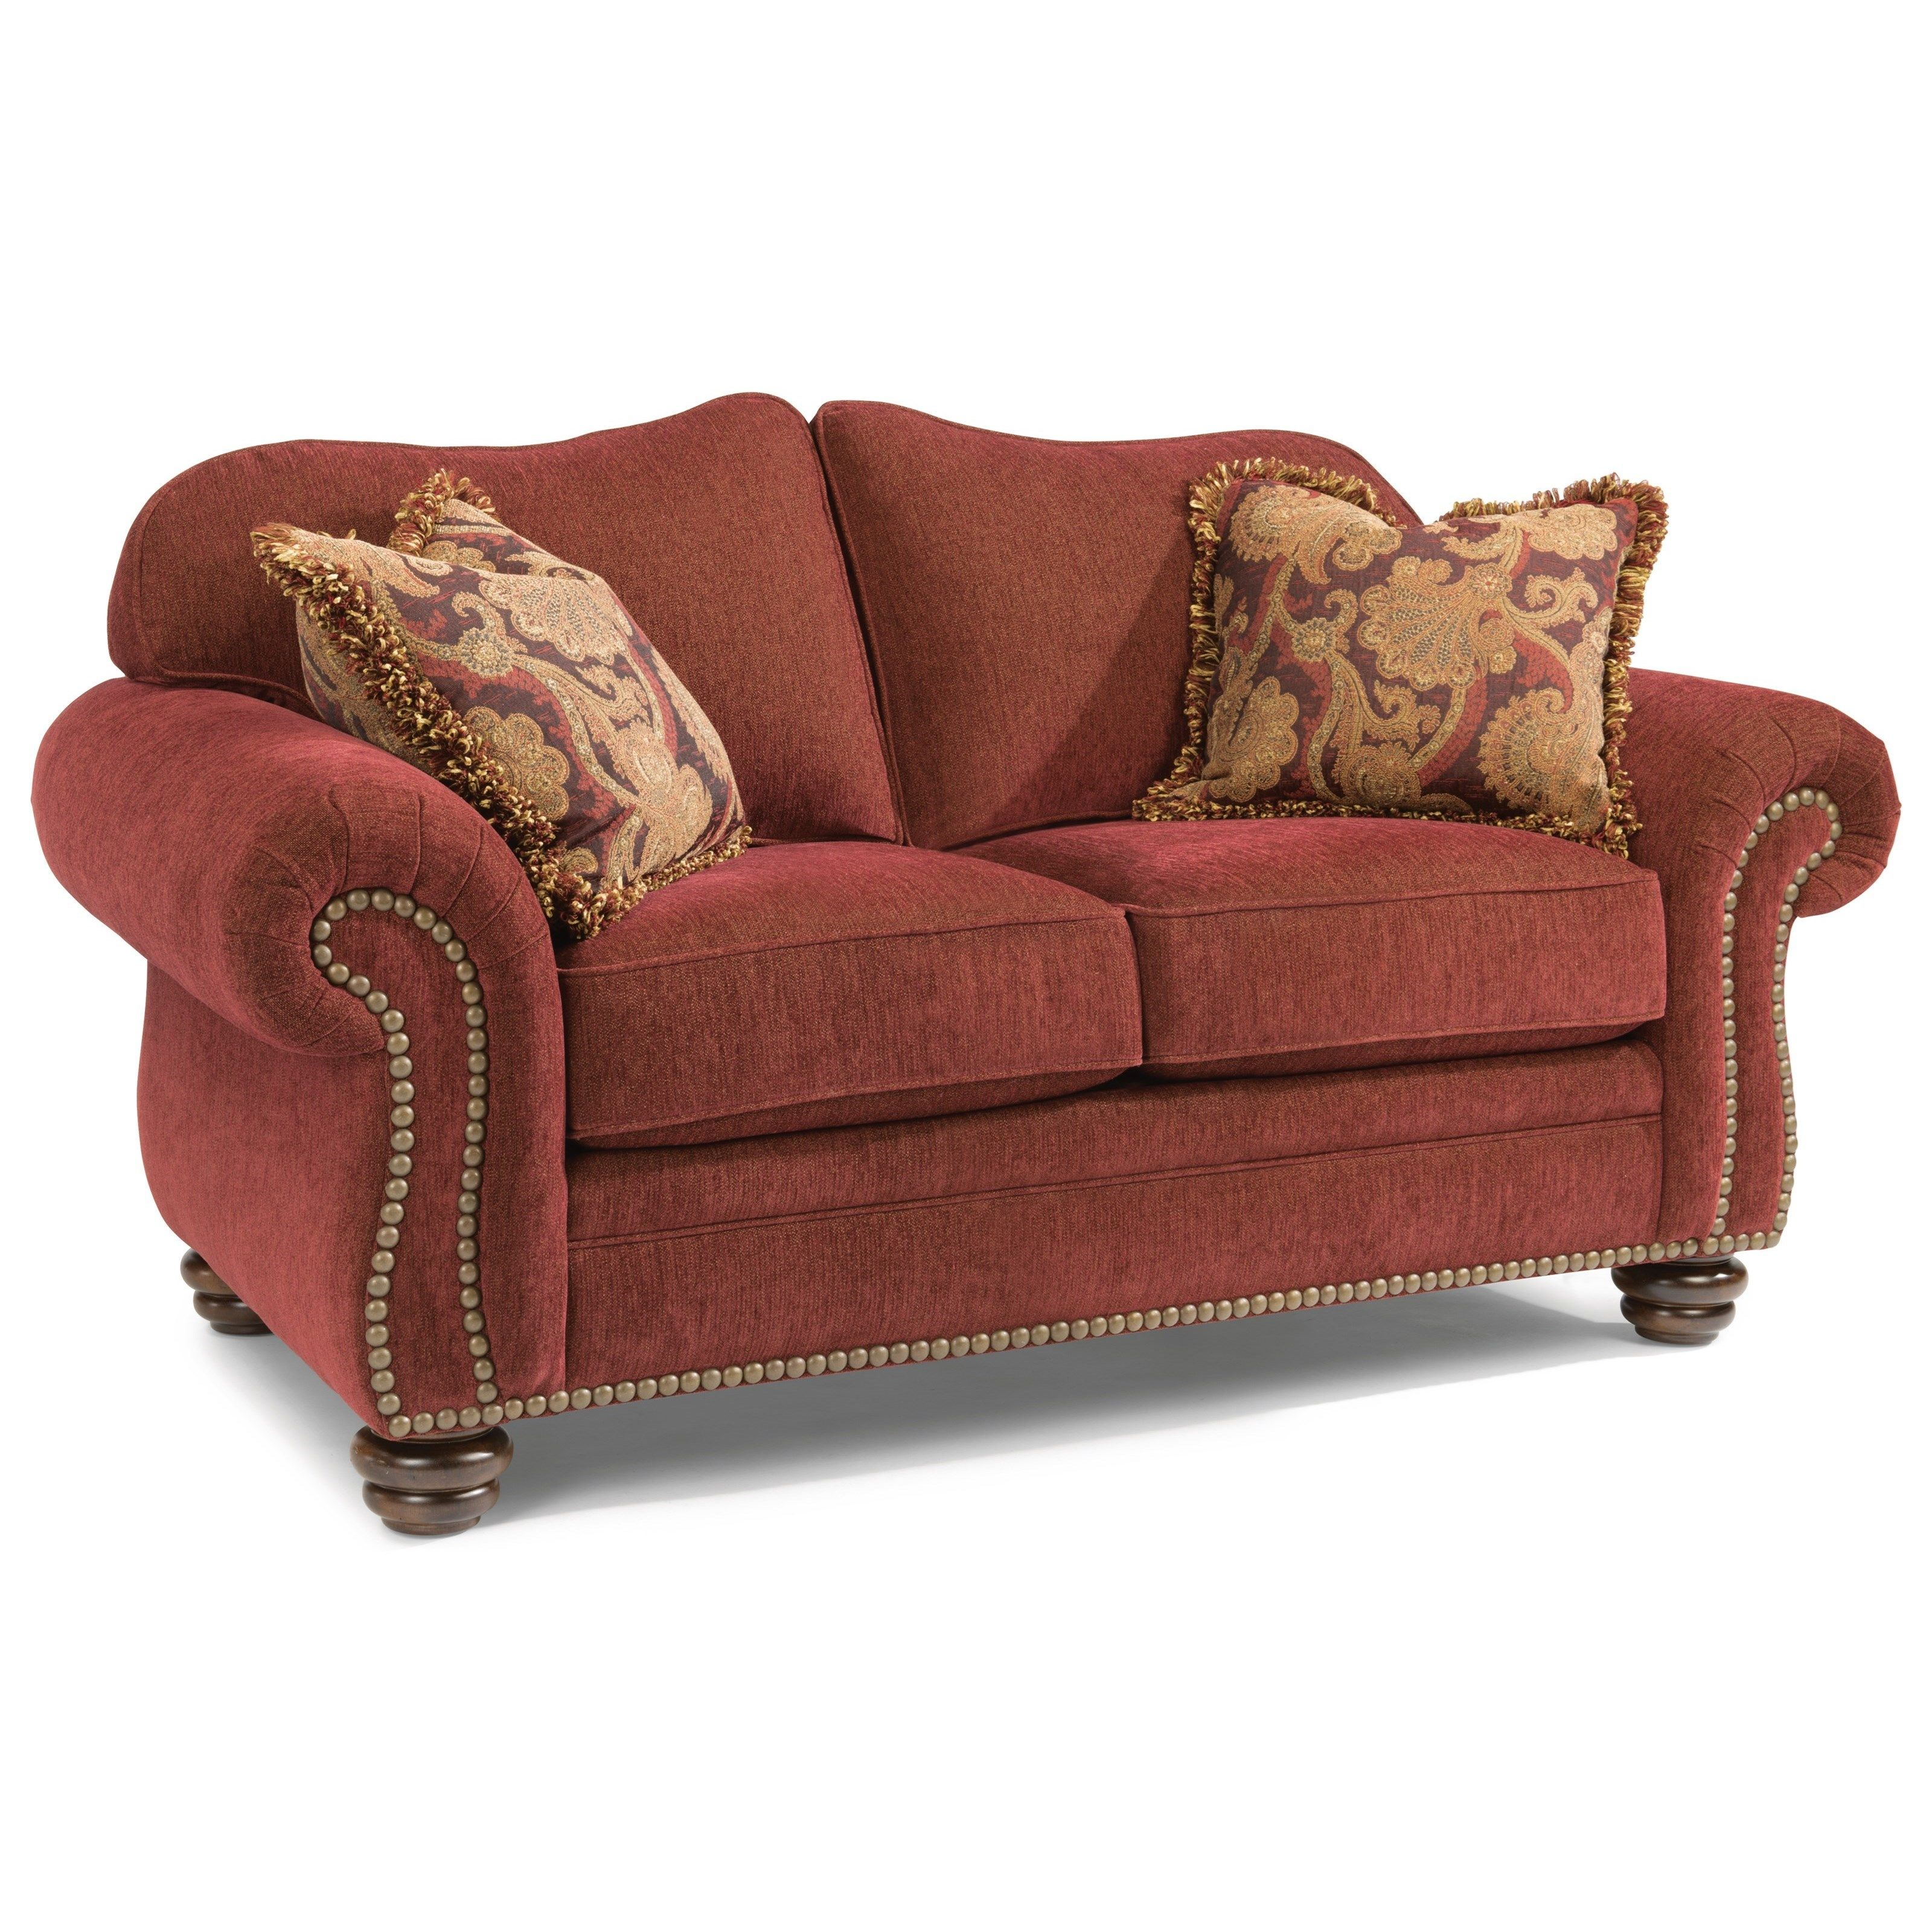 Lovely Bexley Love Seat With Nails By Flexsteel